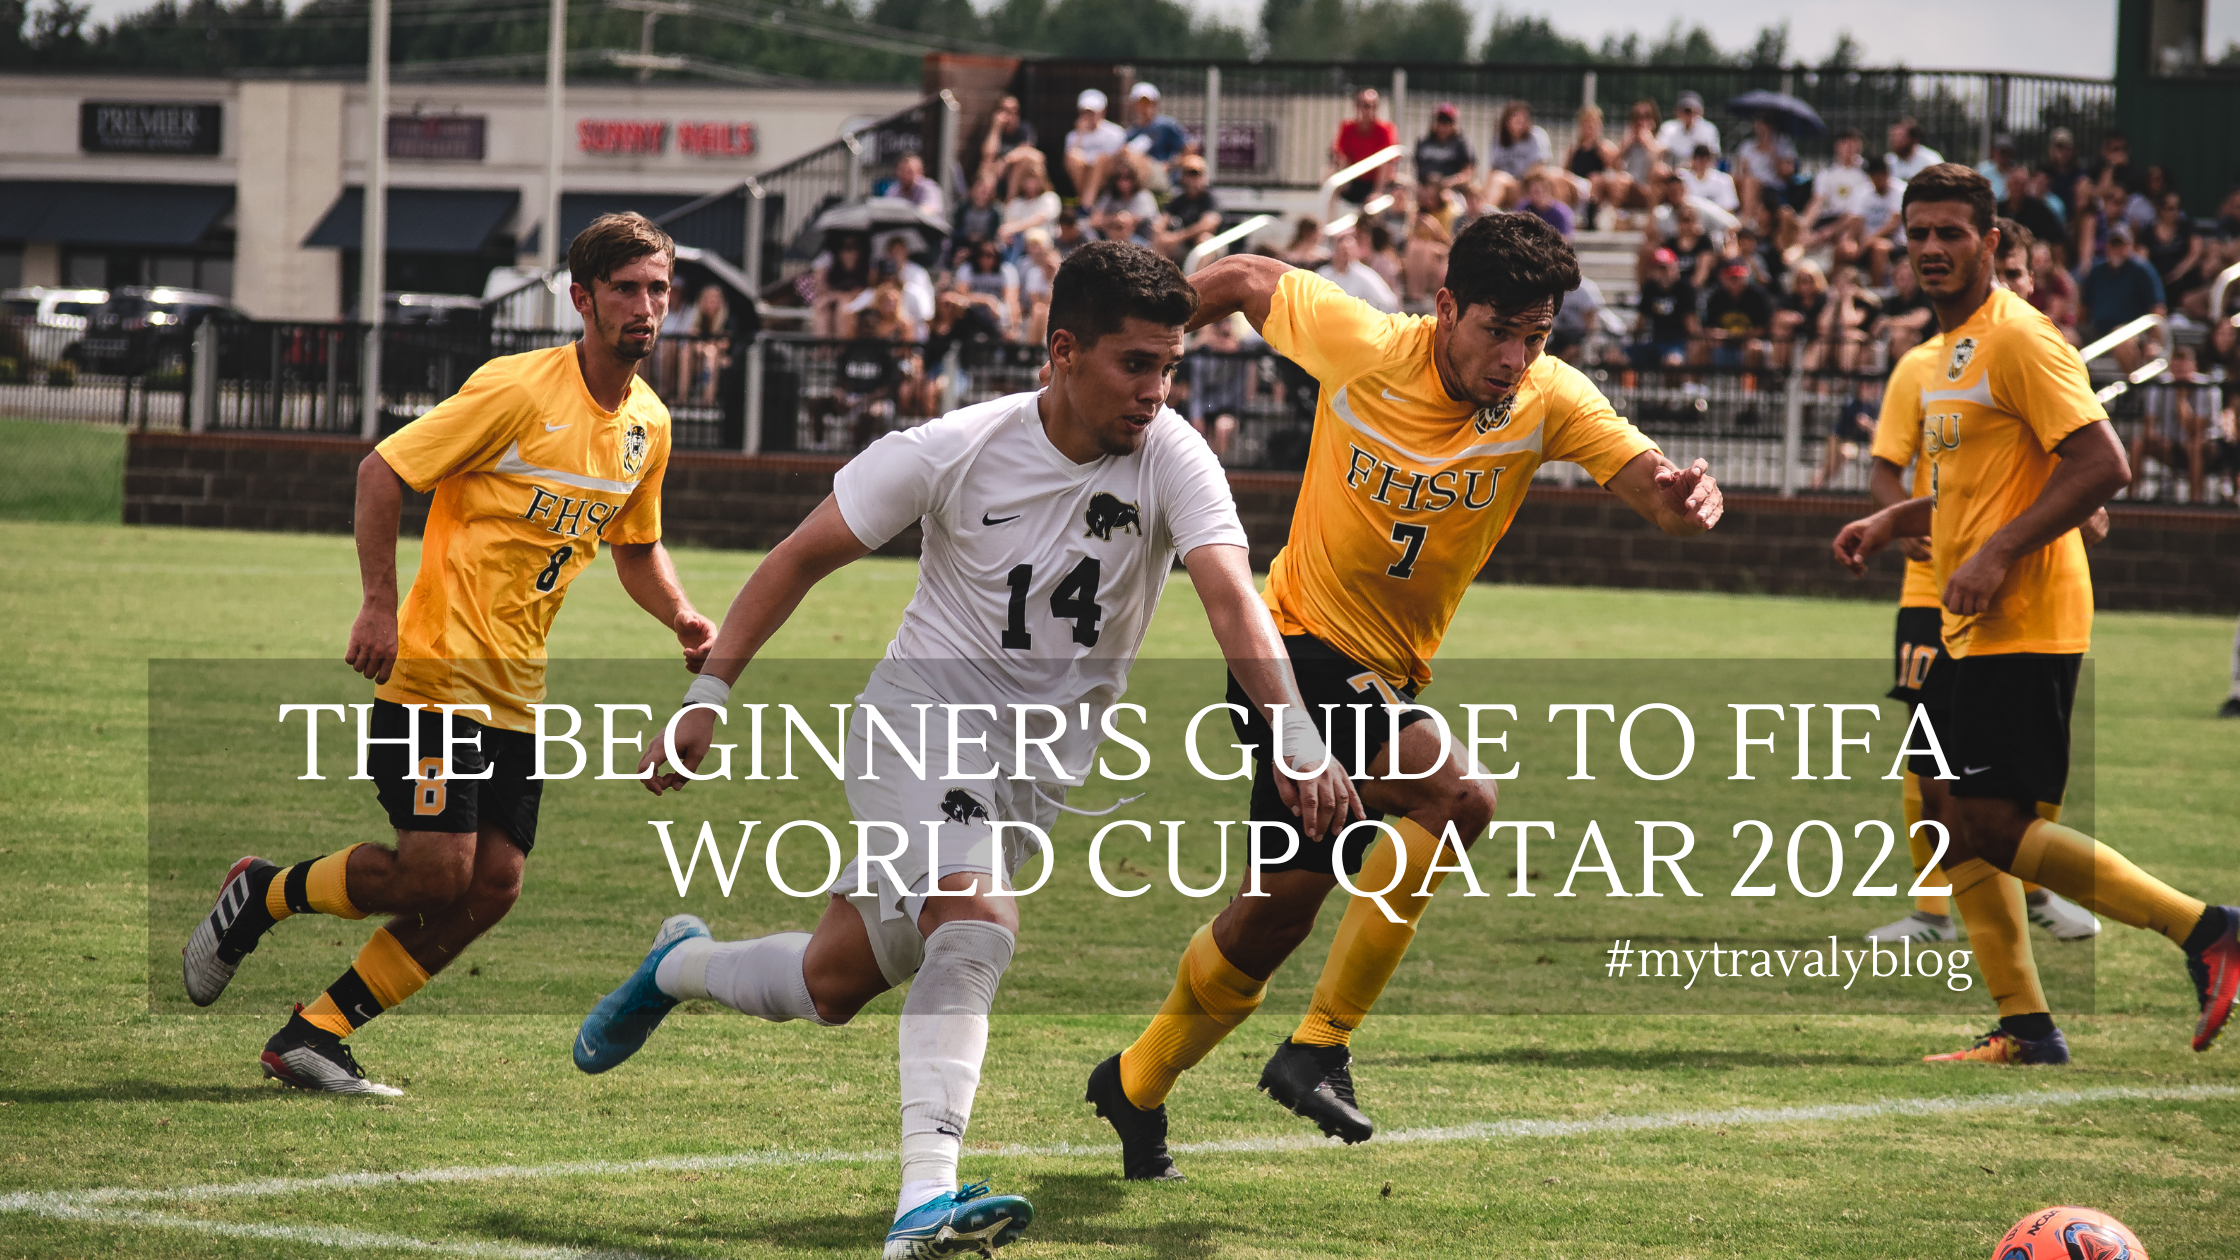 The beginner's guide to FIFA world cup Qatar 2022